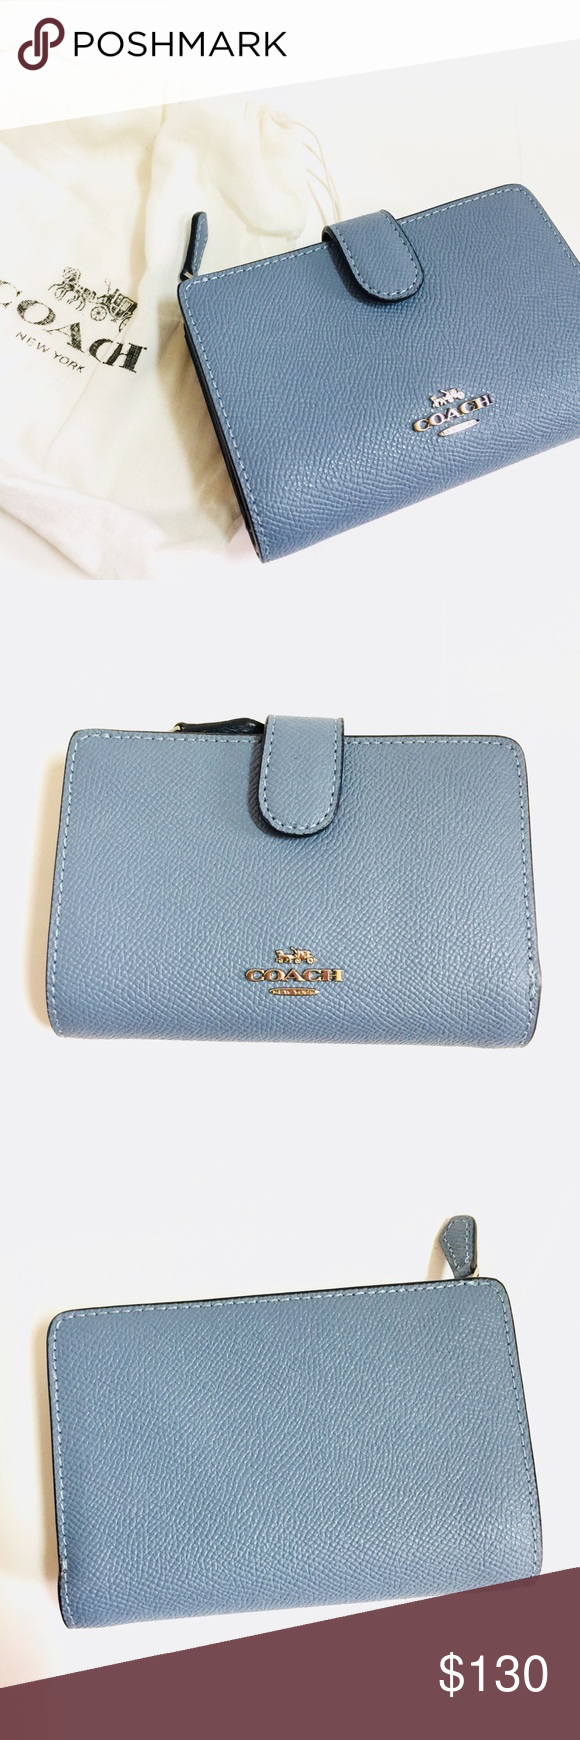 27942d1b7f8a6 Coach Medium Corner Zip Wallet Cross Grain Leather Details  Comes with dust  cover -MSRP